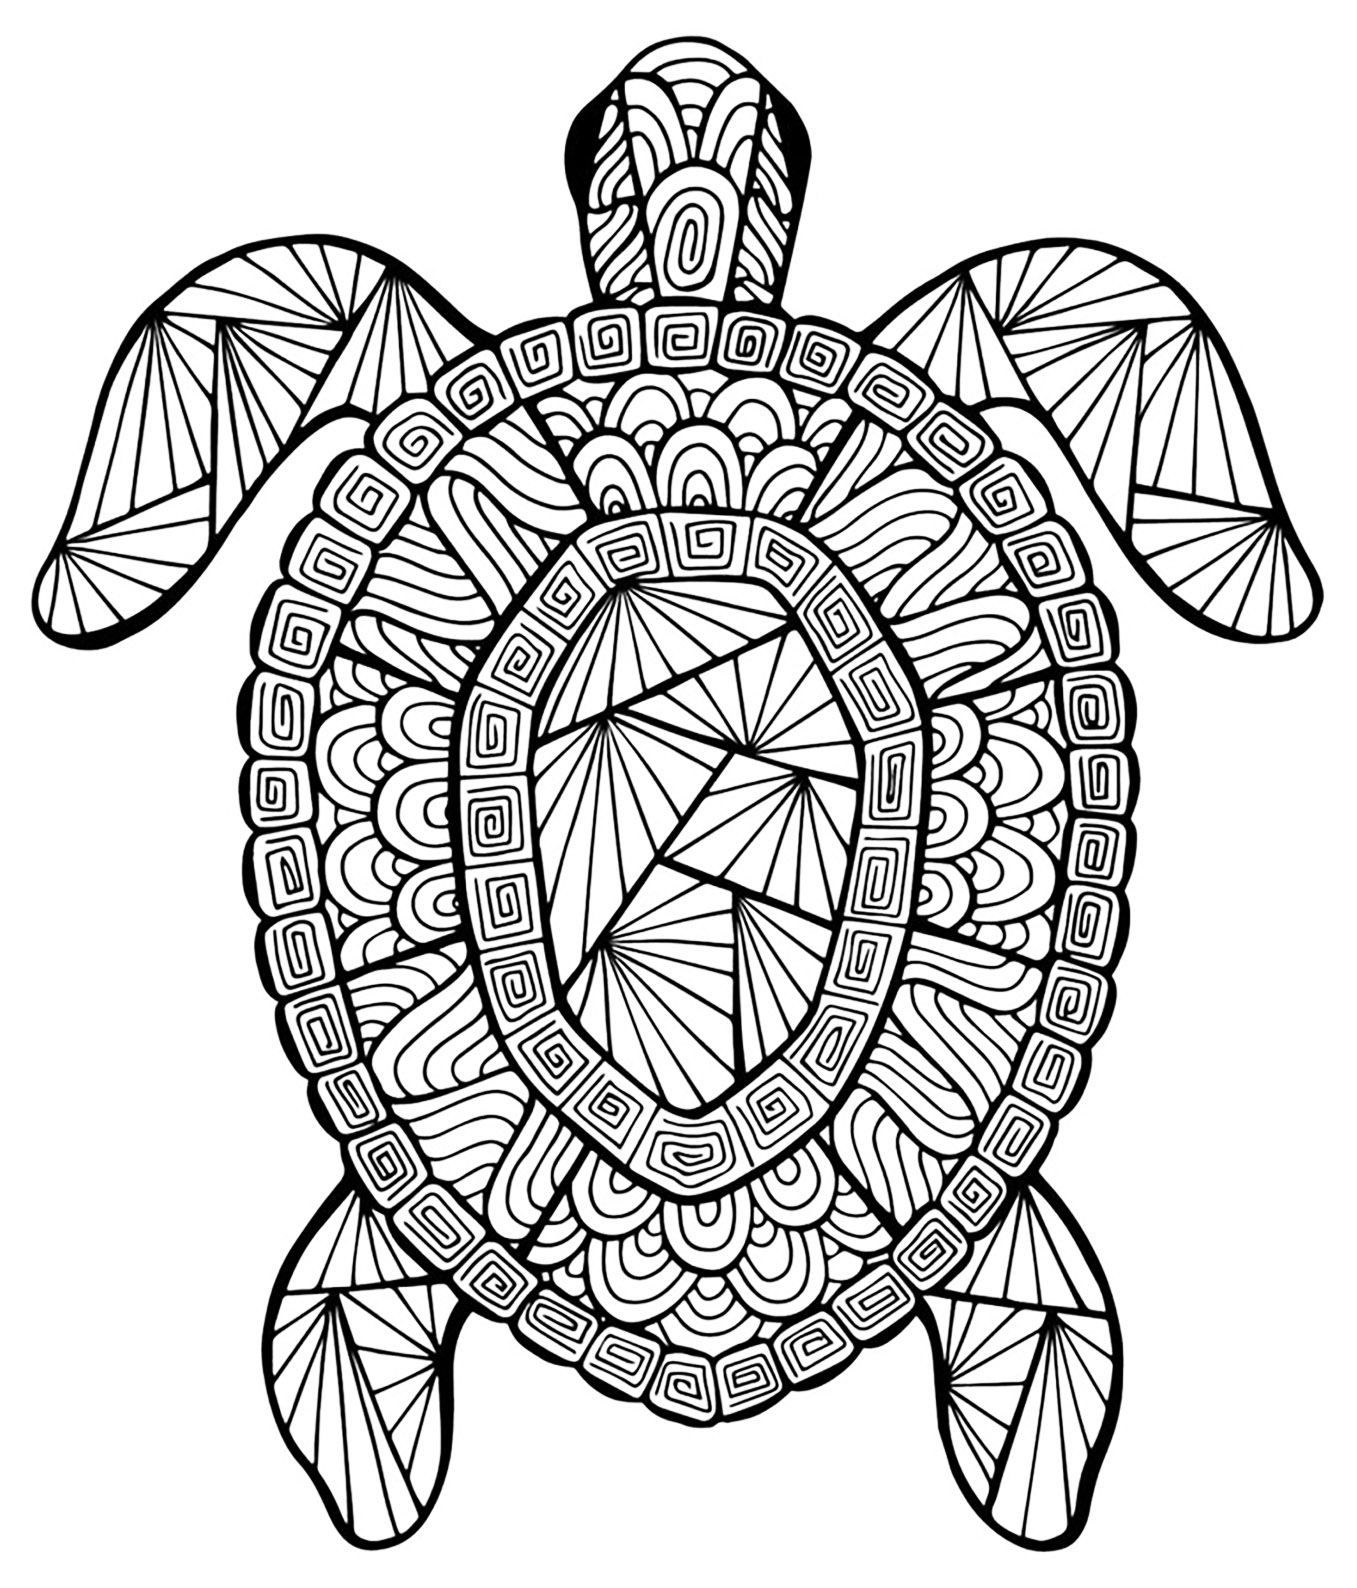 tortoise coloring page turtles to download for free turtles kids coloring pages tortoise page coloring